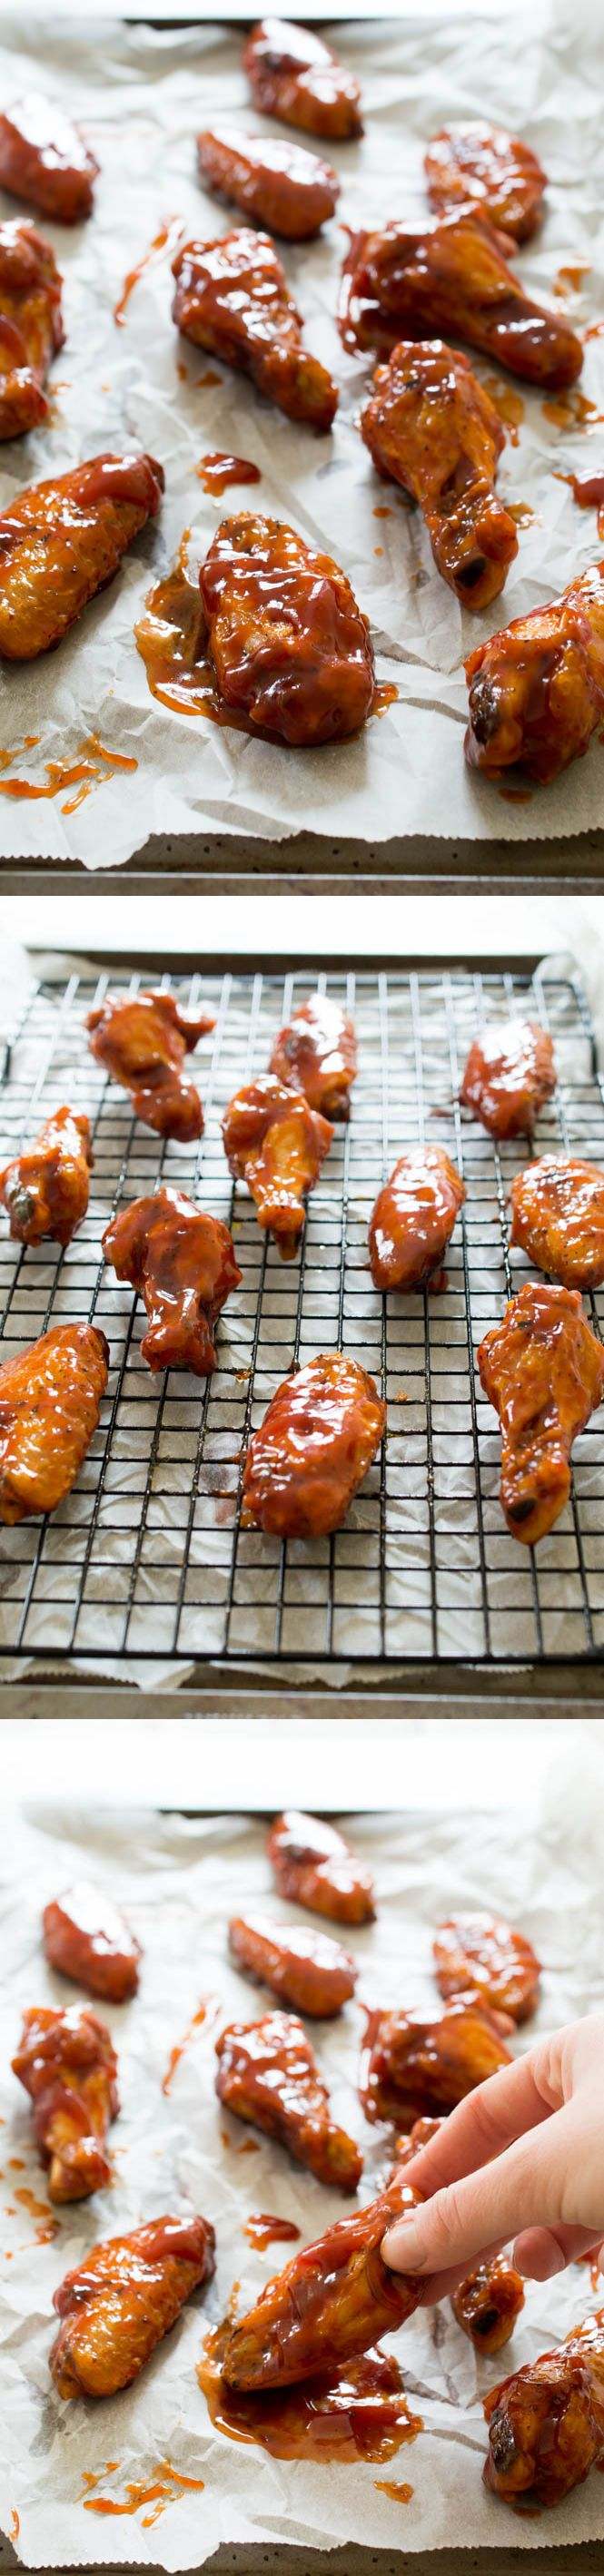 Crispy Baked Honey Chipotle Chicken Wings. Super easy to make and healthier than fried. Tossed in a sweet and spicy Honey Chipotle sauce! | chefsavvy.com #recipe #appetizer #wings #chipotle